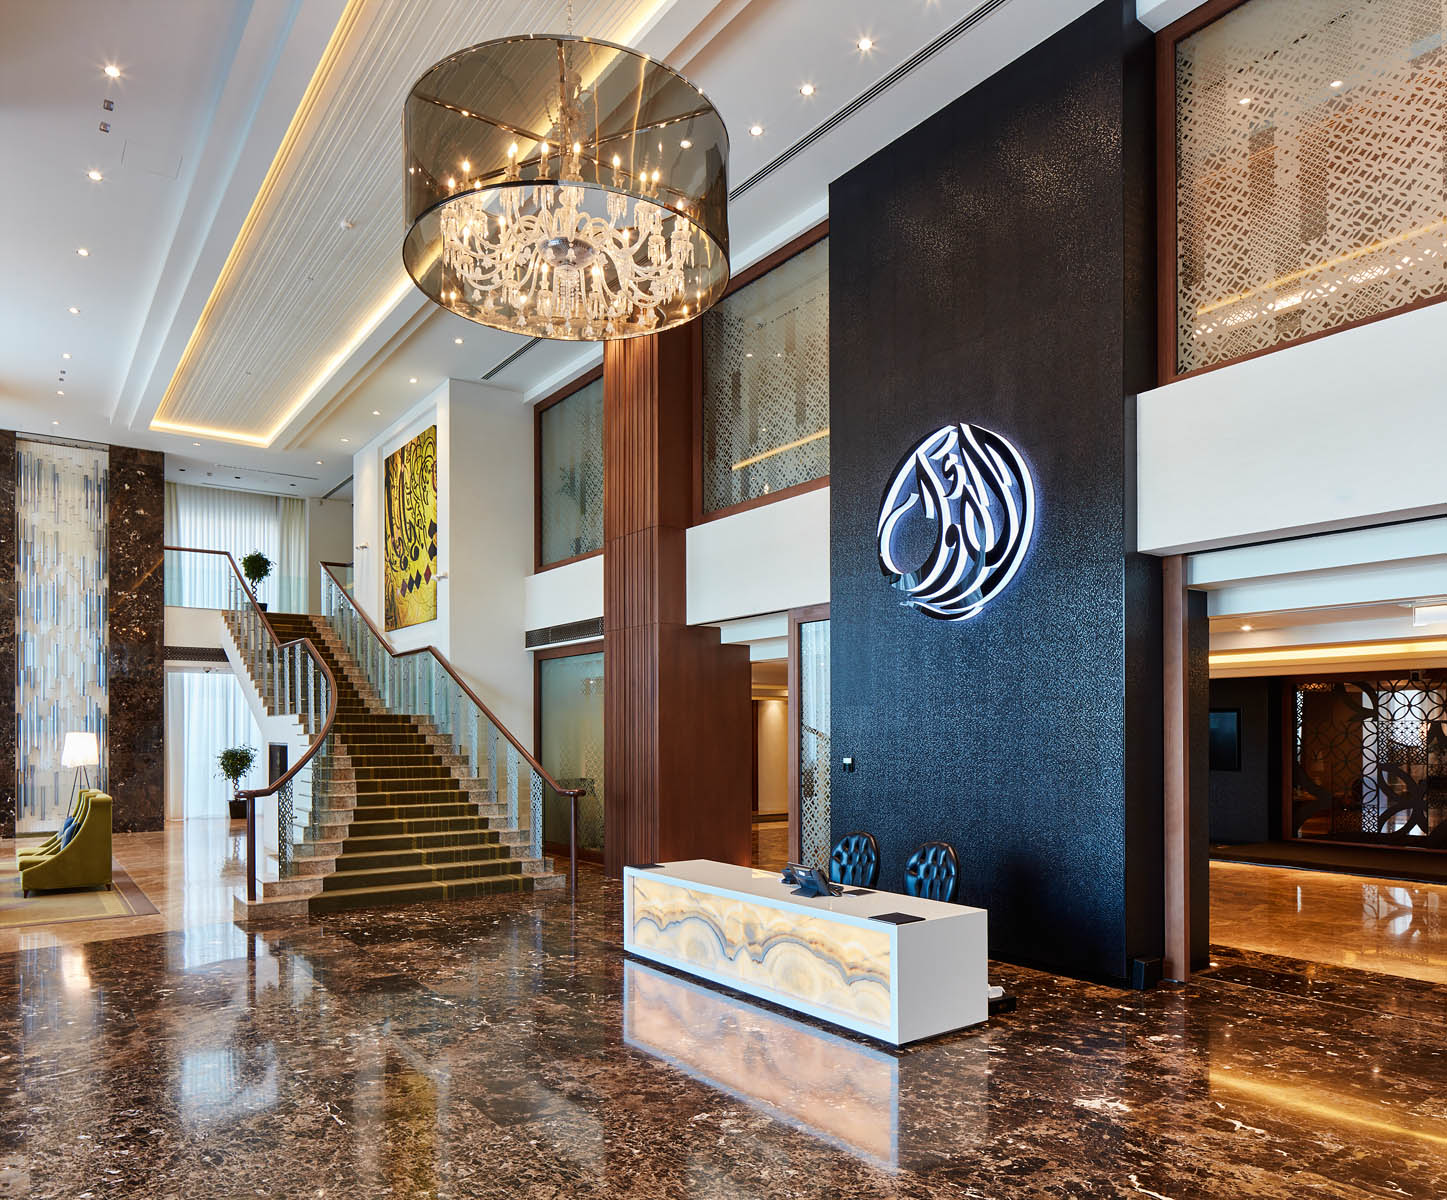 Design and supply of fine Italian marble for Qatari Bank headquarters.Client: Stalgi